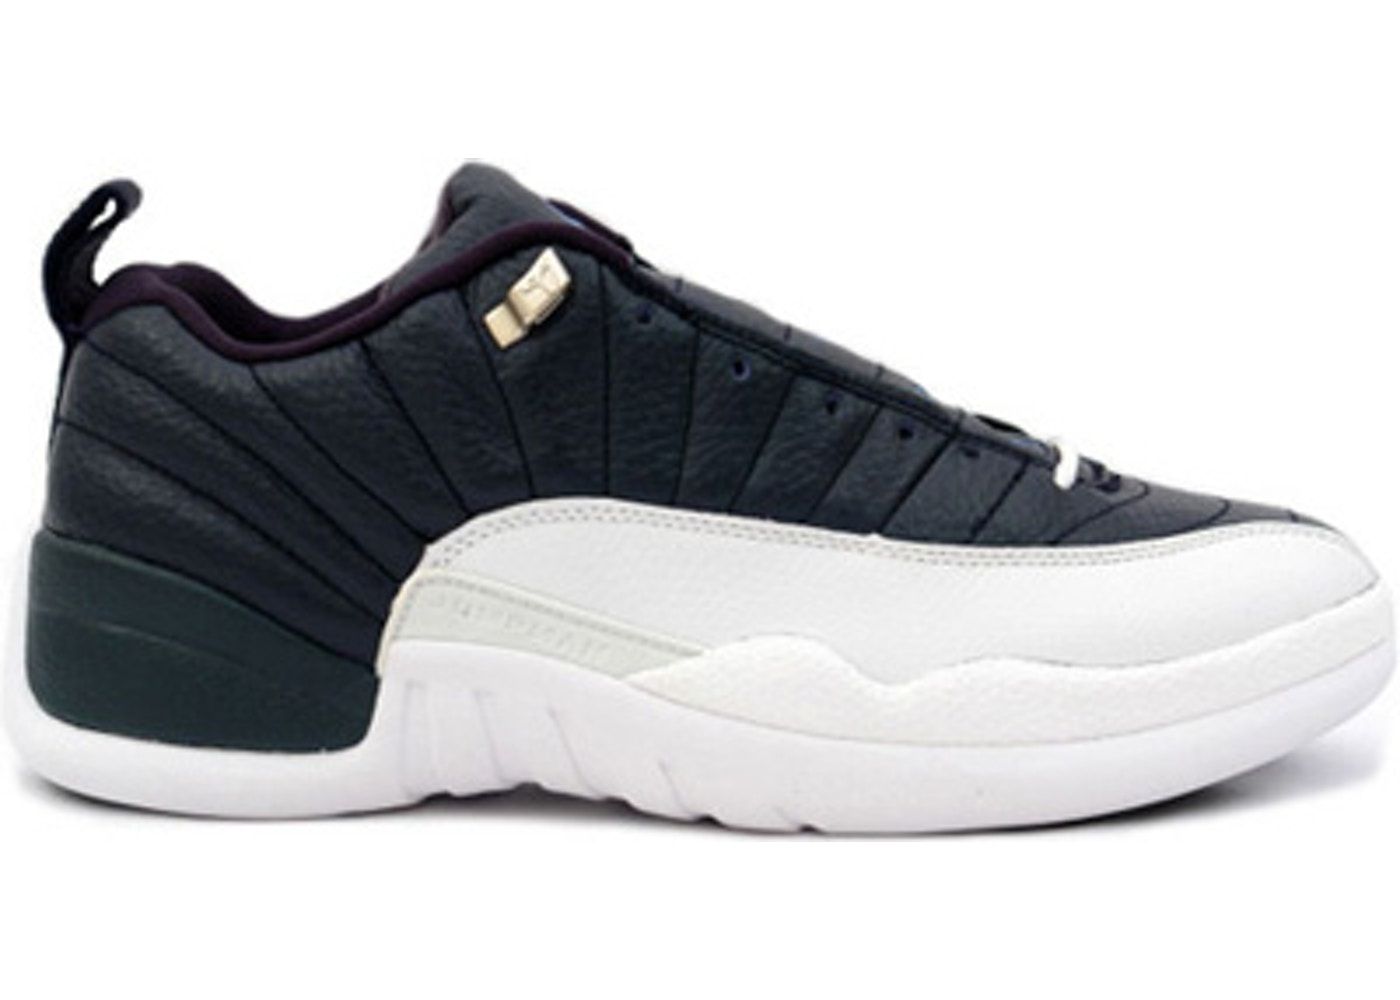 timeless design 8f352 ec6d0 Sell. or Ask. Size  12. View All Bids. Jordan 12 Retro Low Obsidian ...